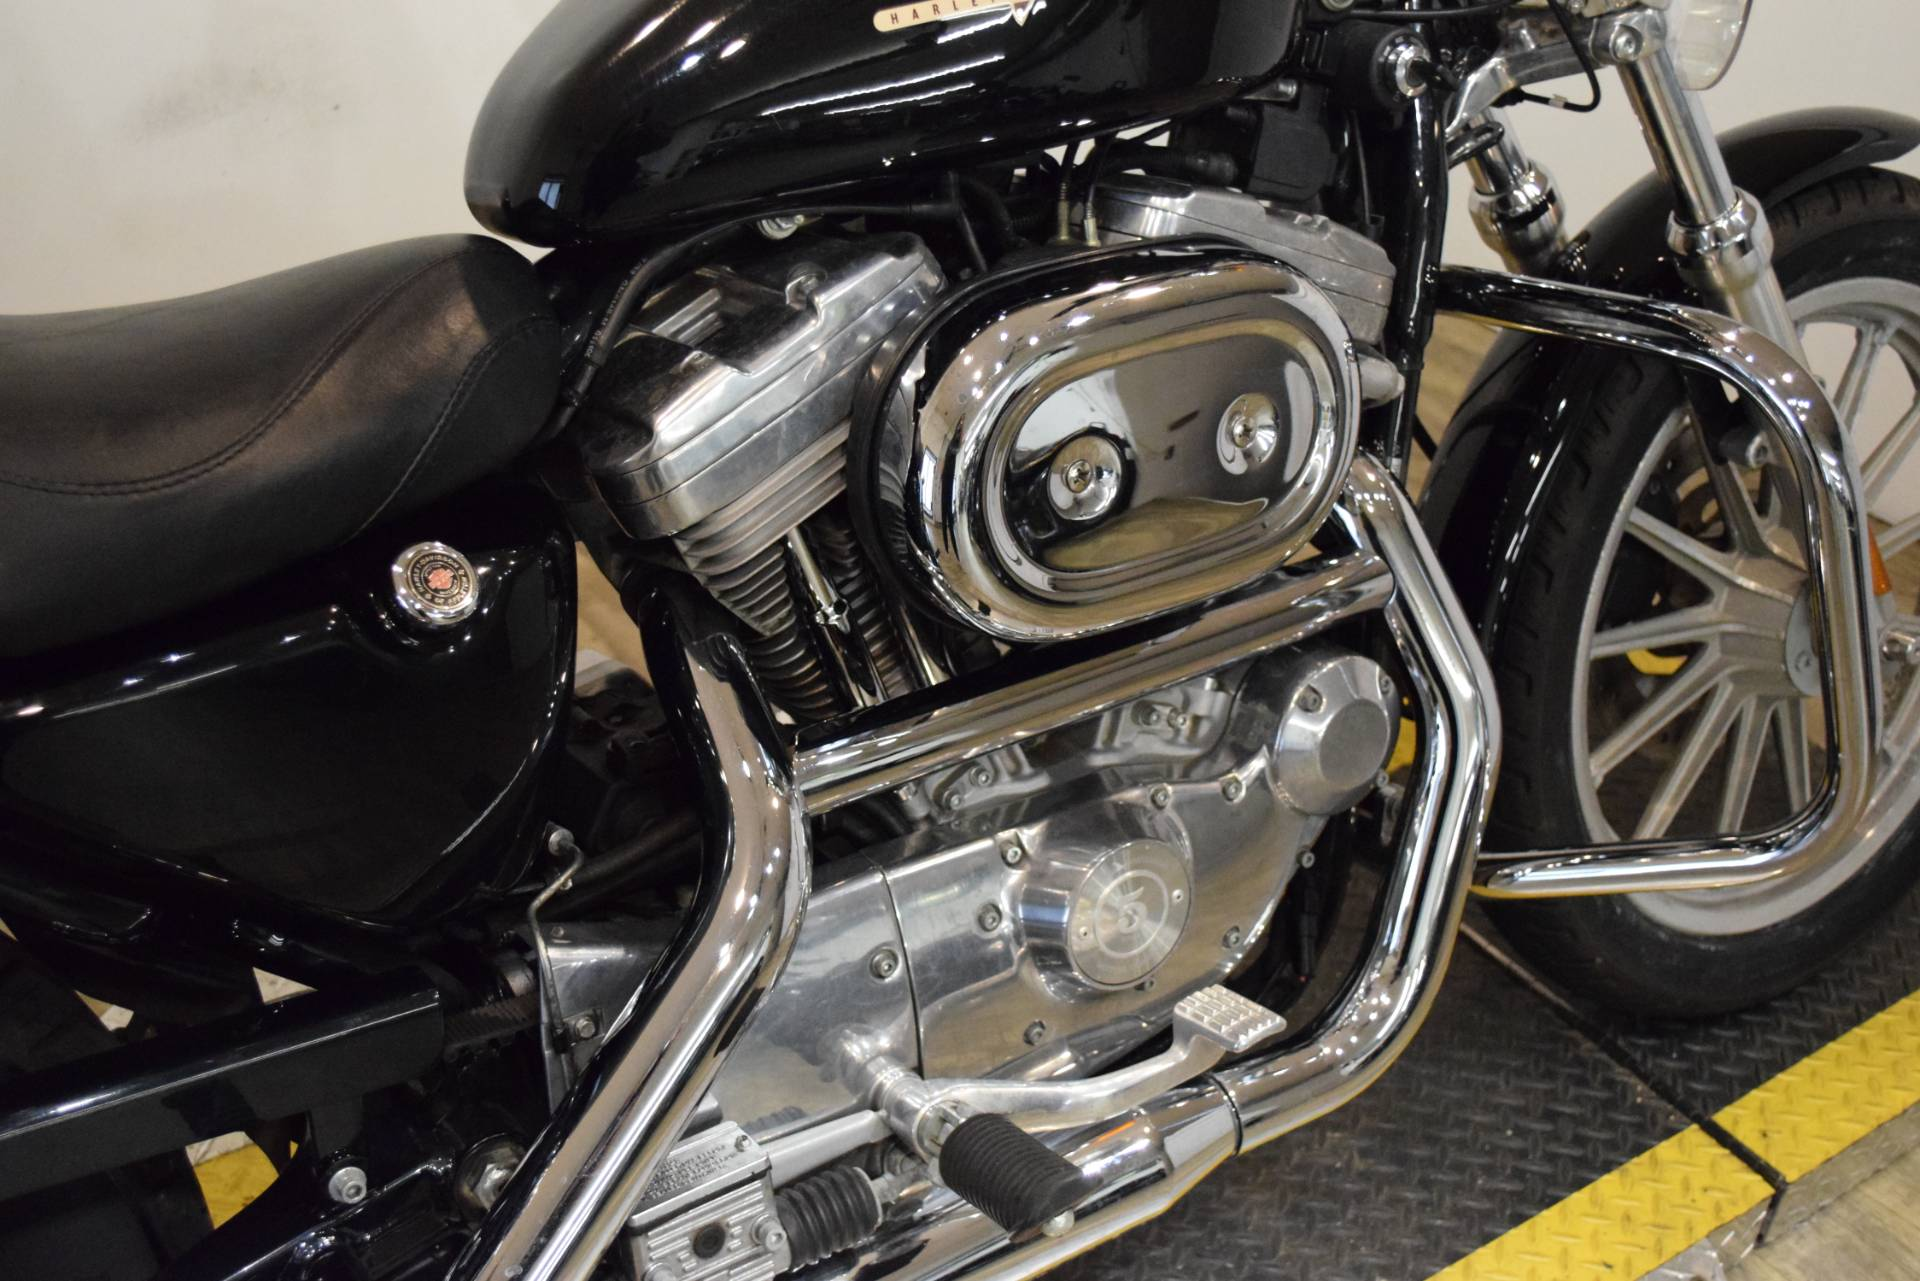 2000 Harley-Davidson XLH Sportster® 883 in Wauconda, Illinois - Photo 7